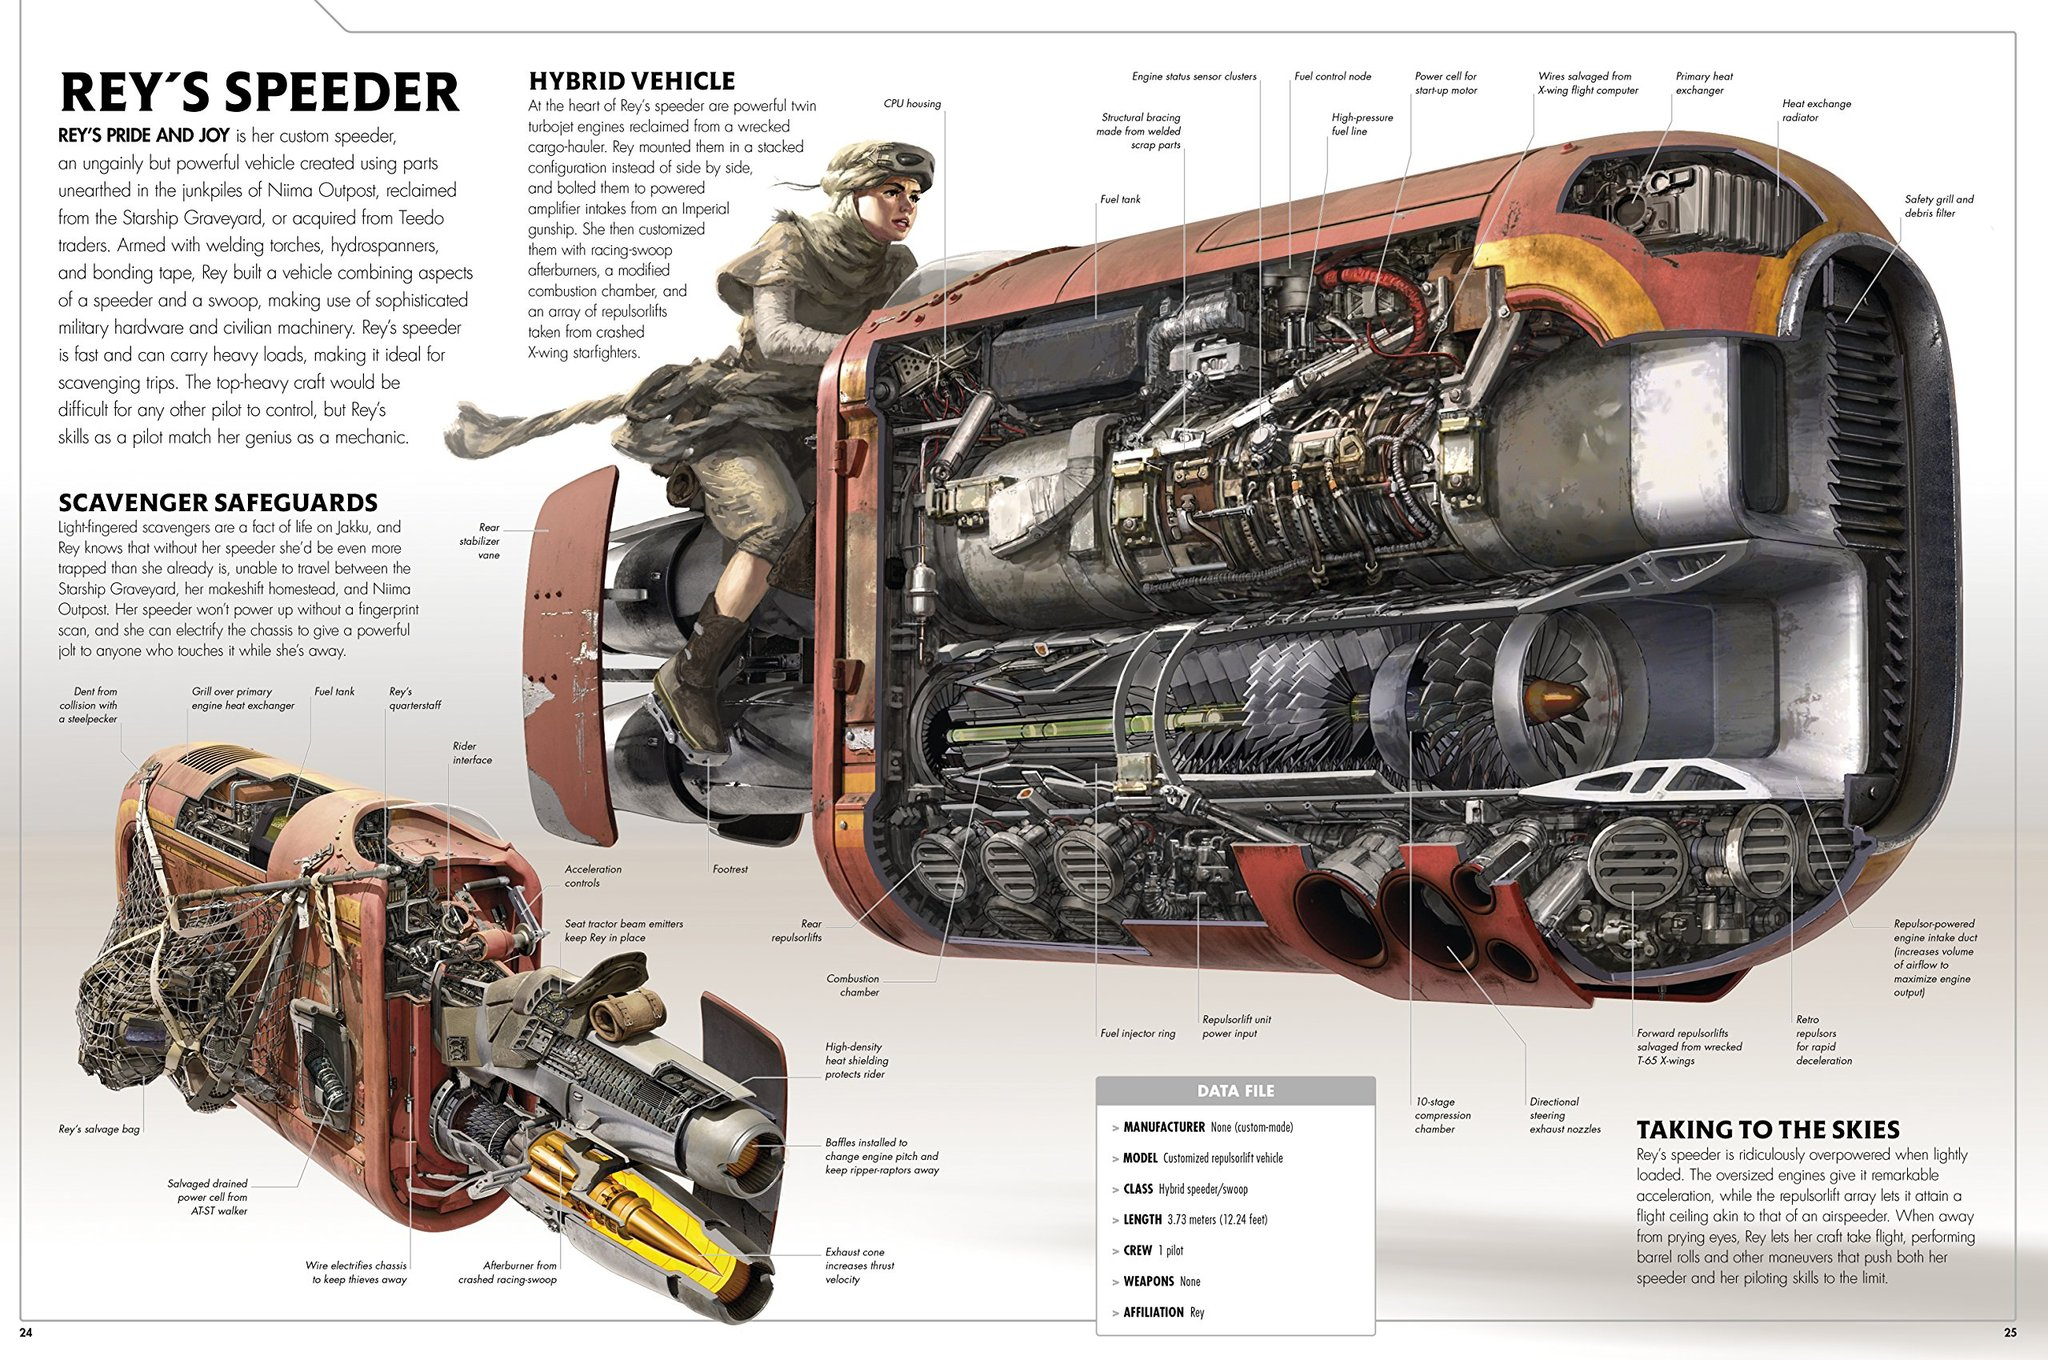 Star Wars: The Force Awakens Incredible Cross-Sections